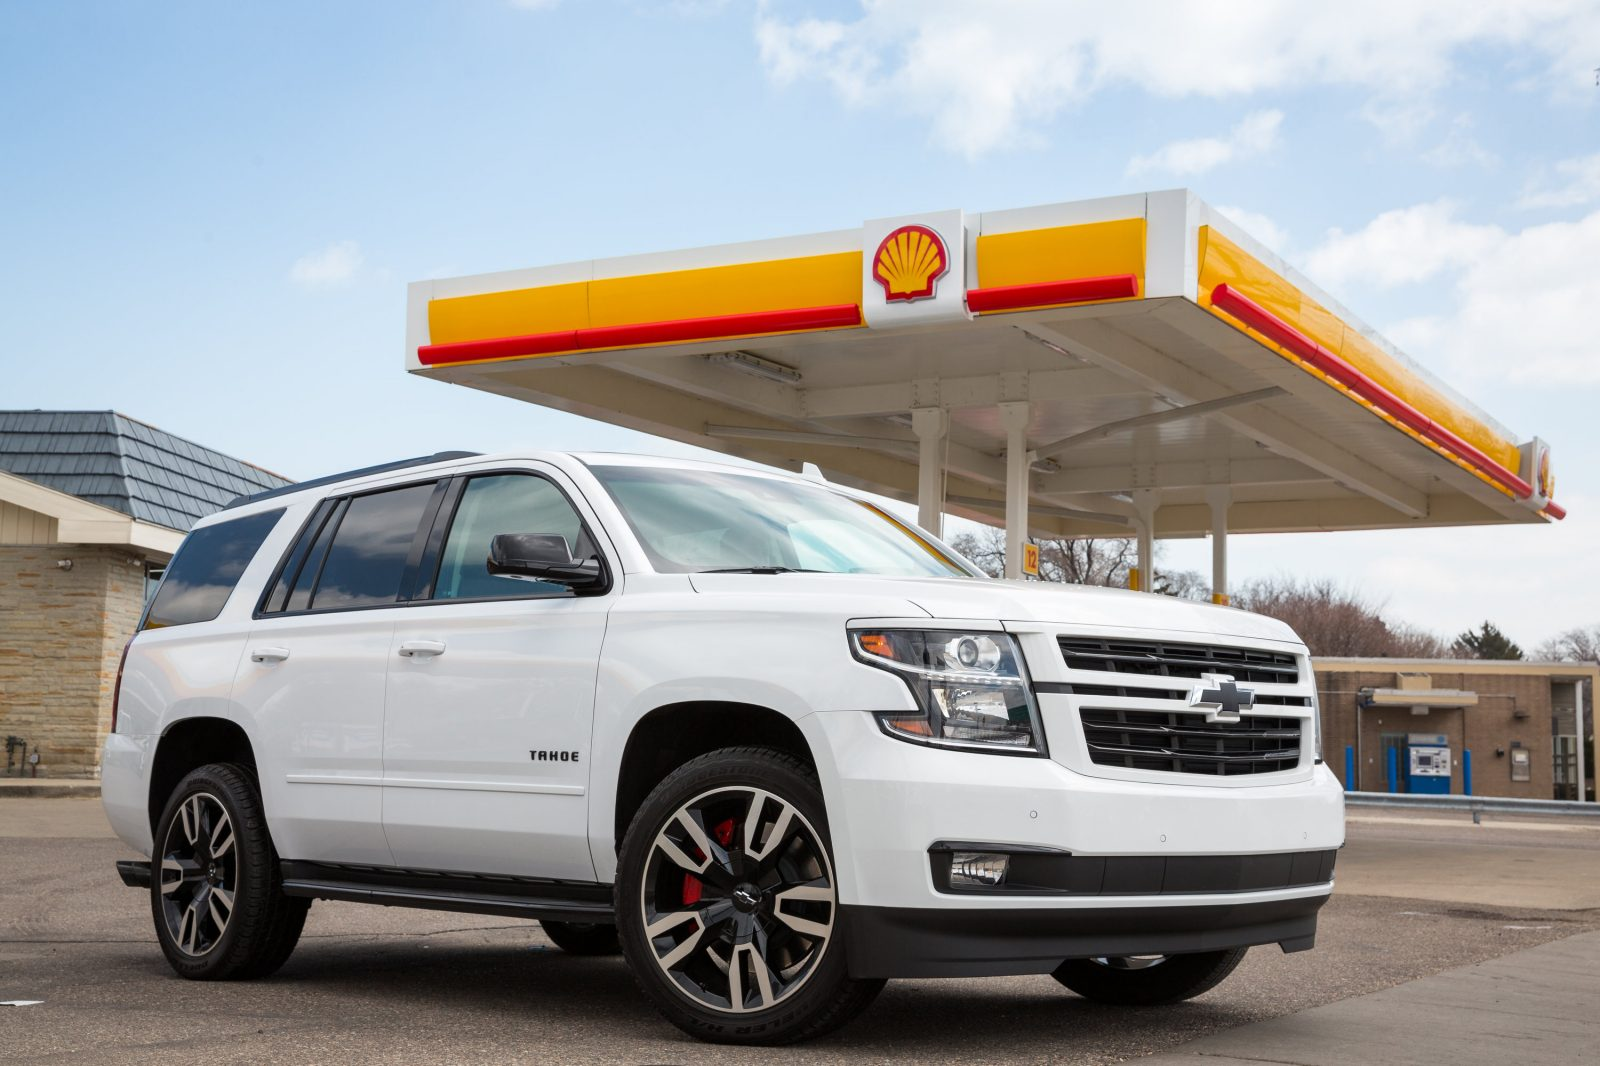 Shell are to roll out ultra-fast charging across Europe.